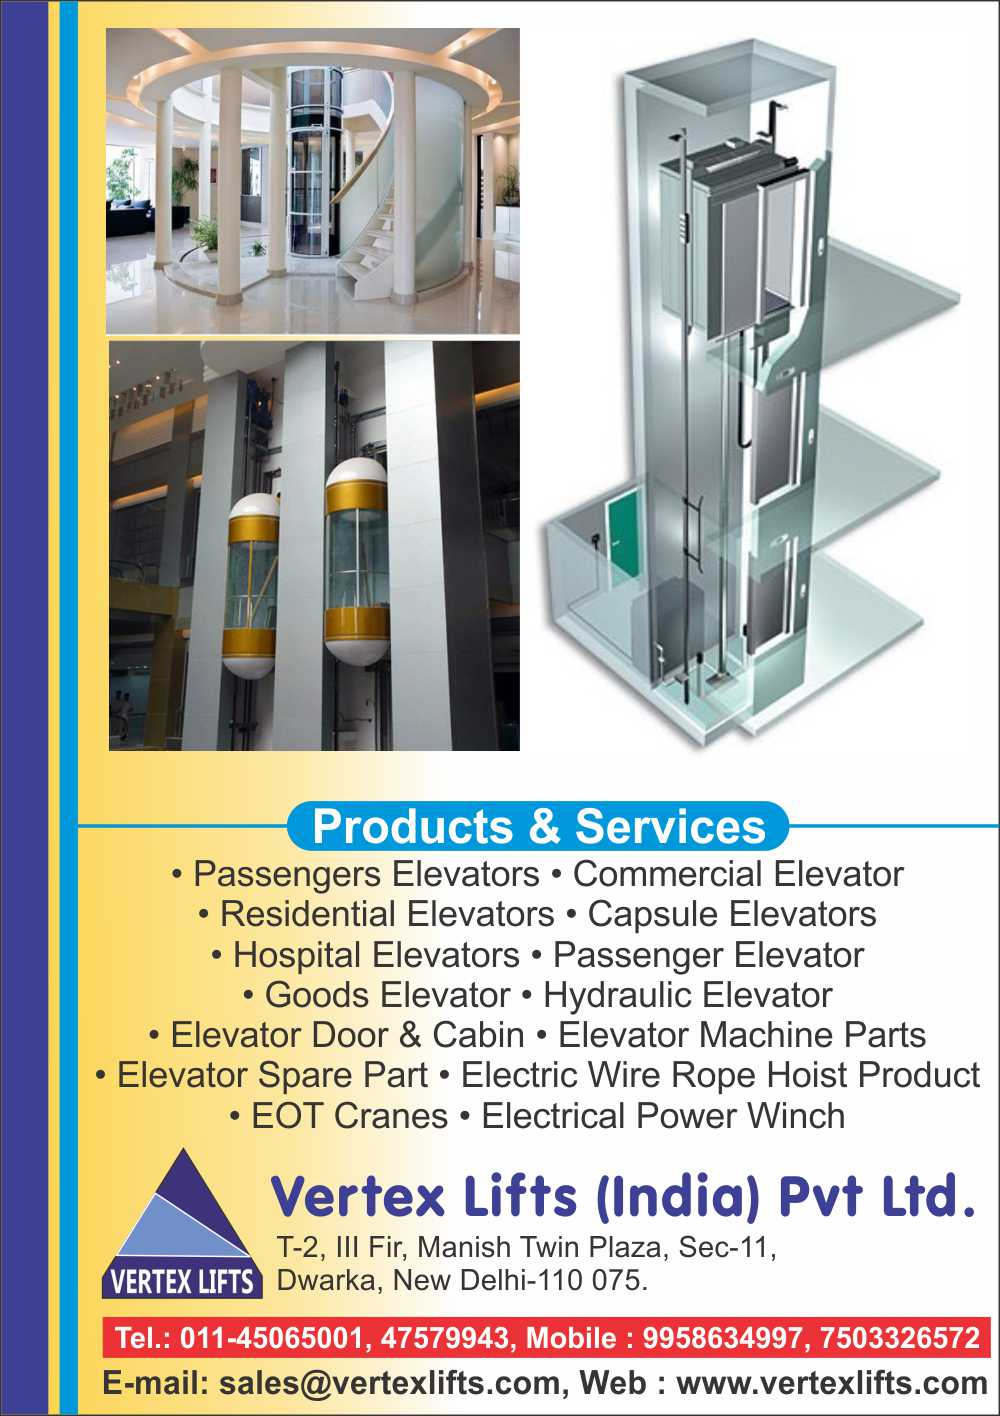 Passenger Elevators, Commercial Elevators, Residential Elevators, Capsule Elevators, Hospital Elevators, Goods Elevators, Elevators, Hydraulic Elevators, Elevator Door, Elevator Cabins, Elevator Machine Parts, Elevator Spare Parts, Electric Wire Rope Hoist Products, EOT Cranes, Electrical Power Winch